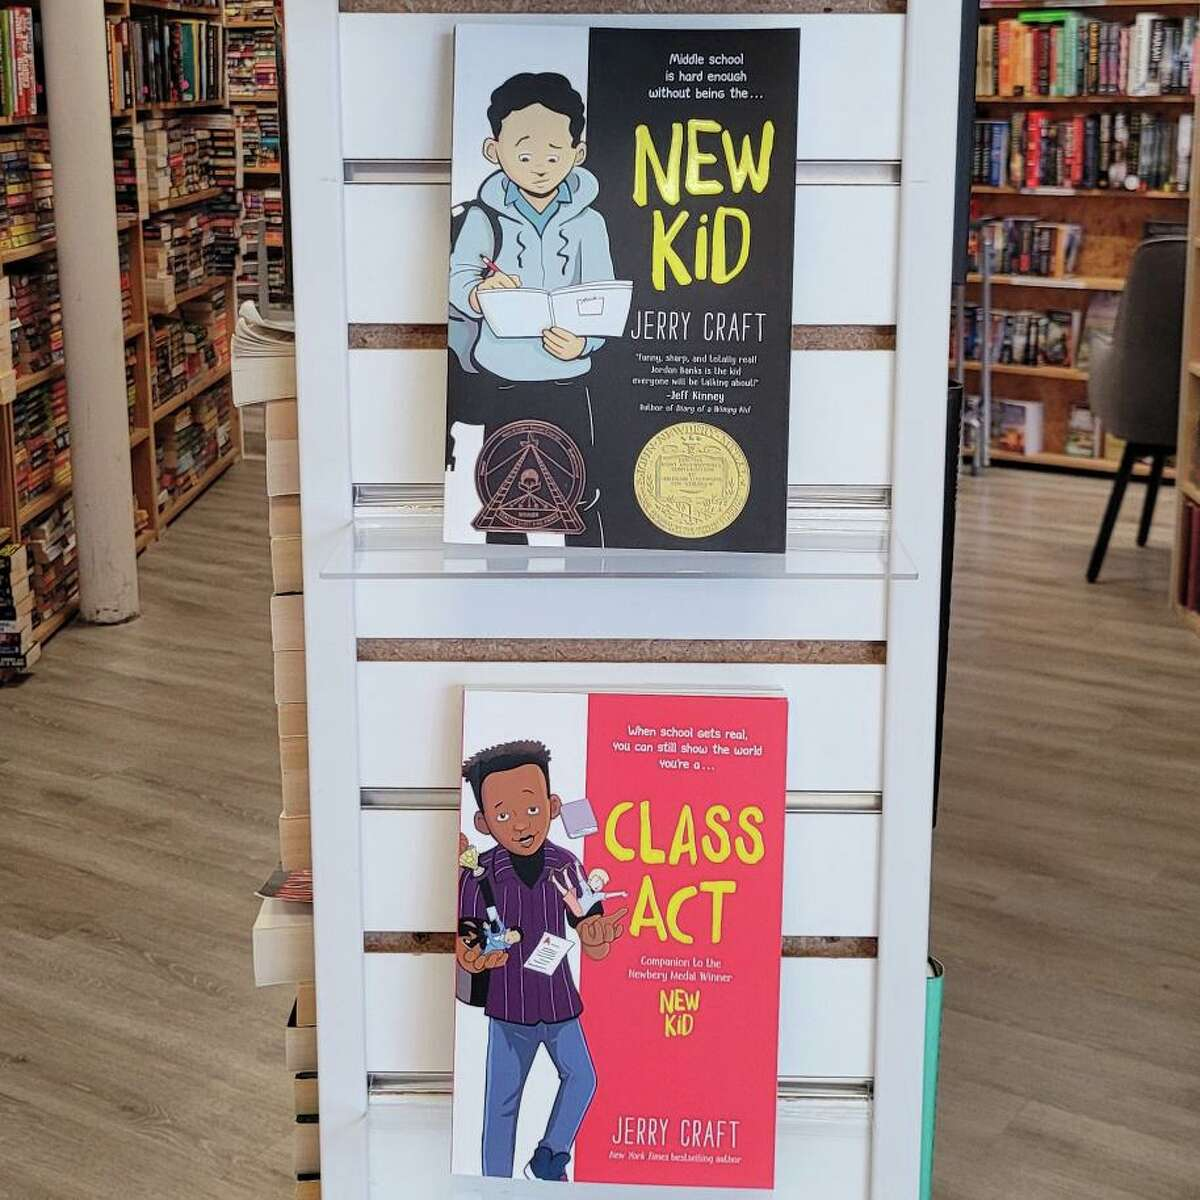 Katy Budget Books is promoting Jerry Craft's graphic novels. Craft's books were removed from Katy ISD libraries following allegations that they promote critical race theory.